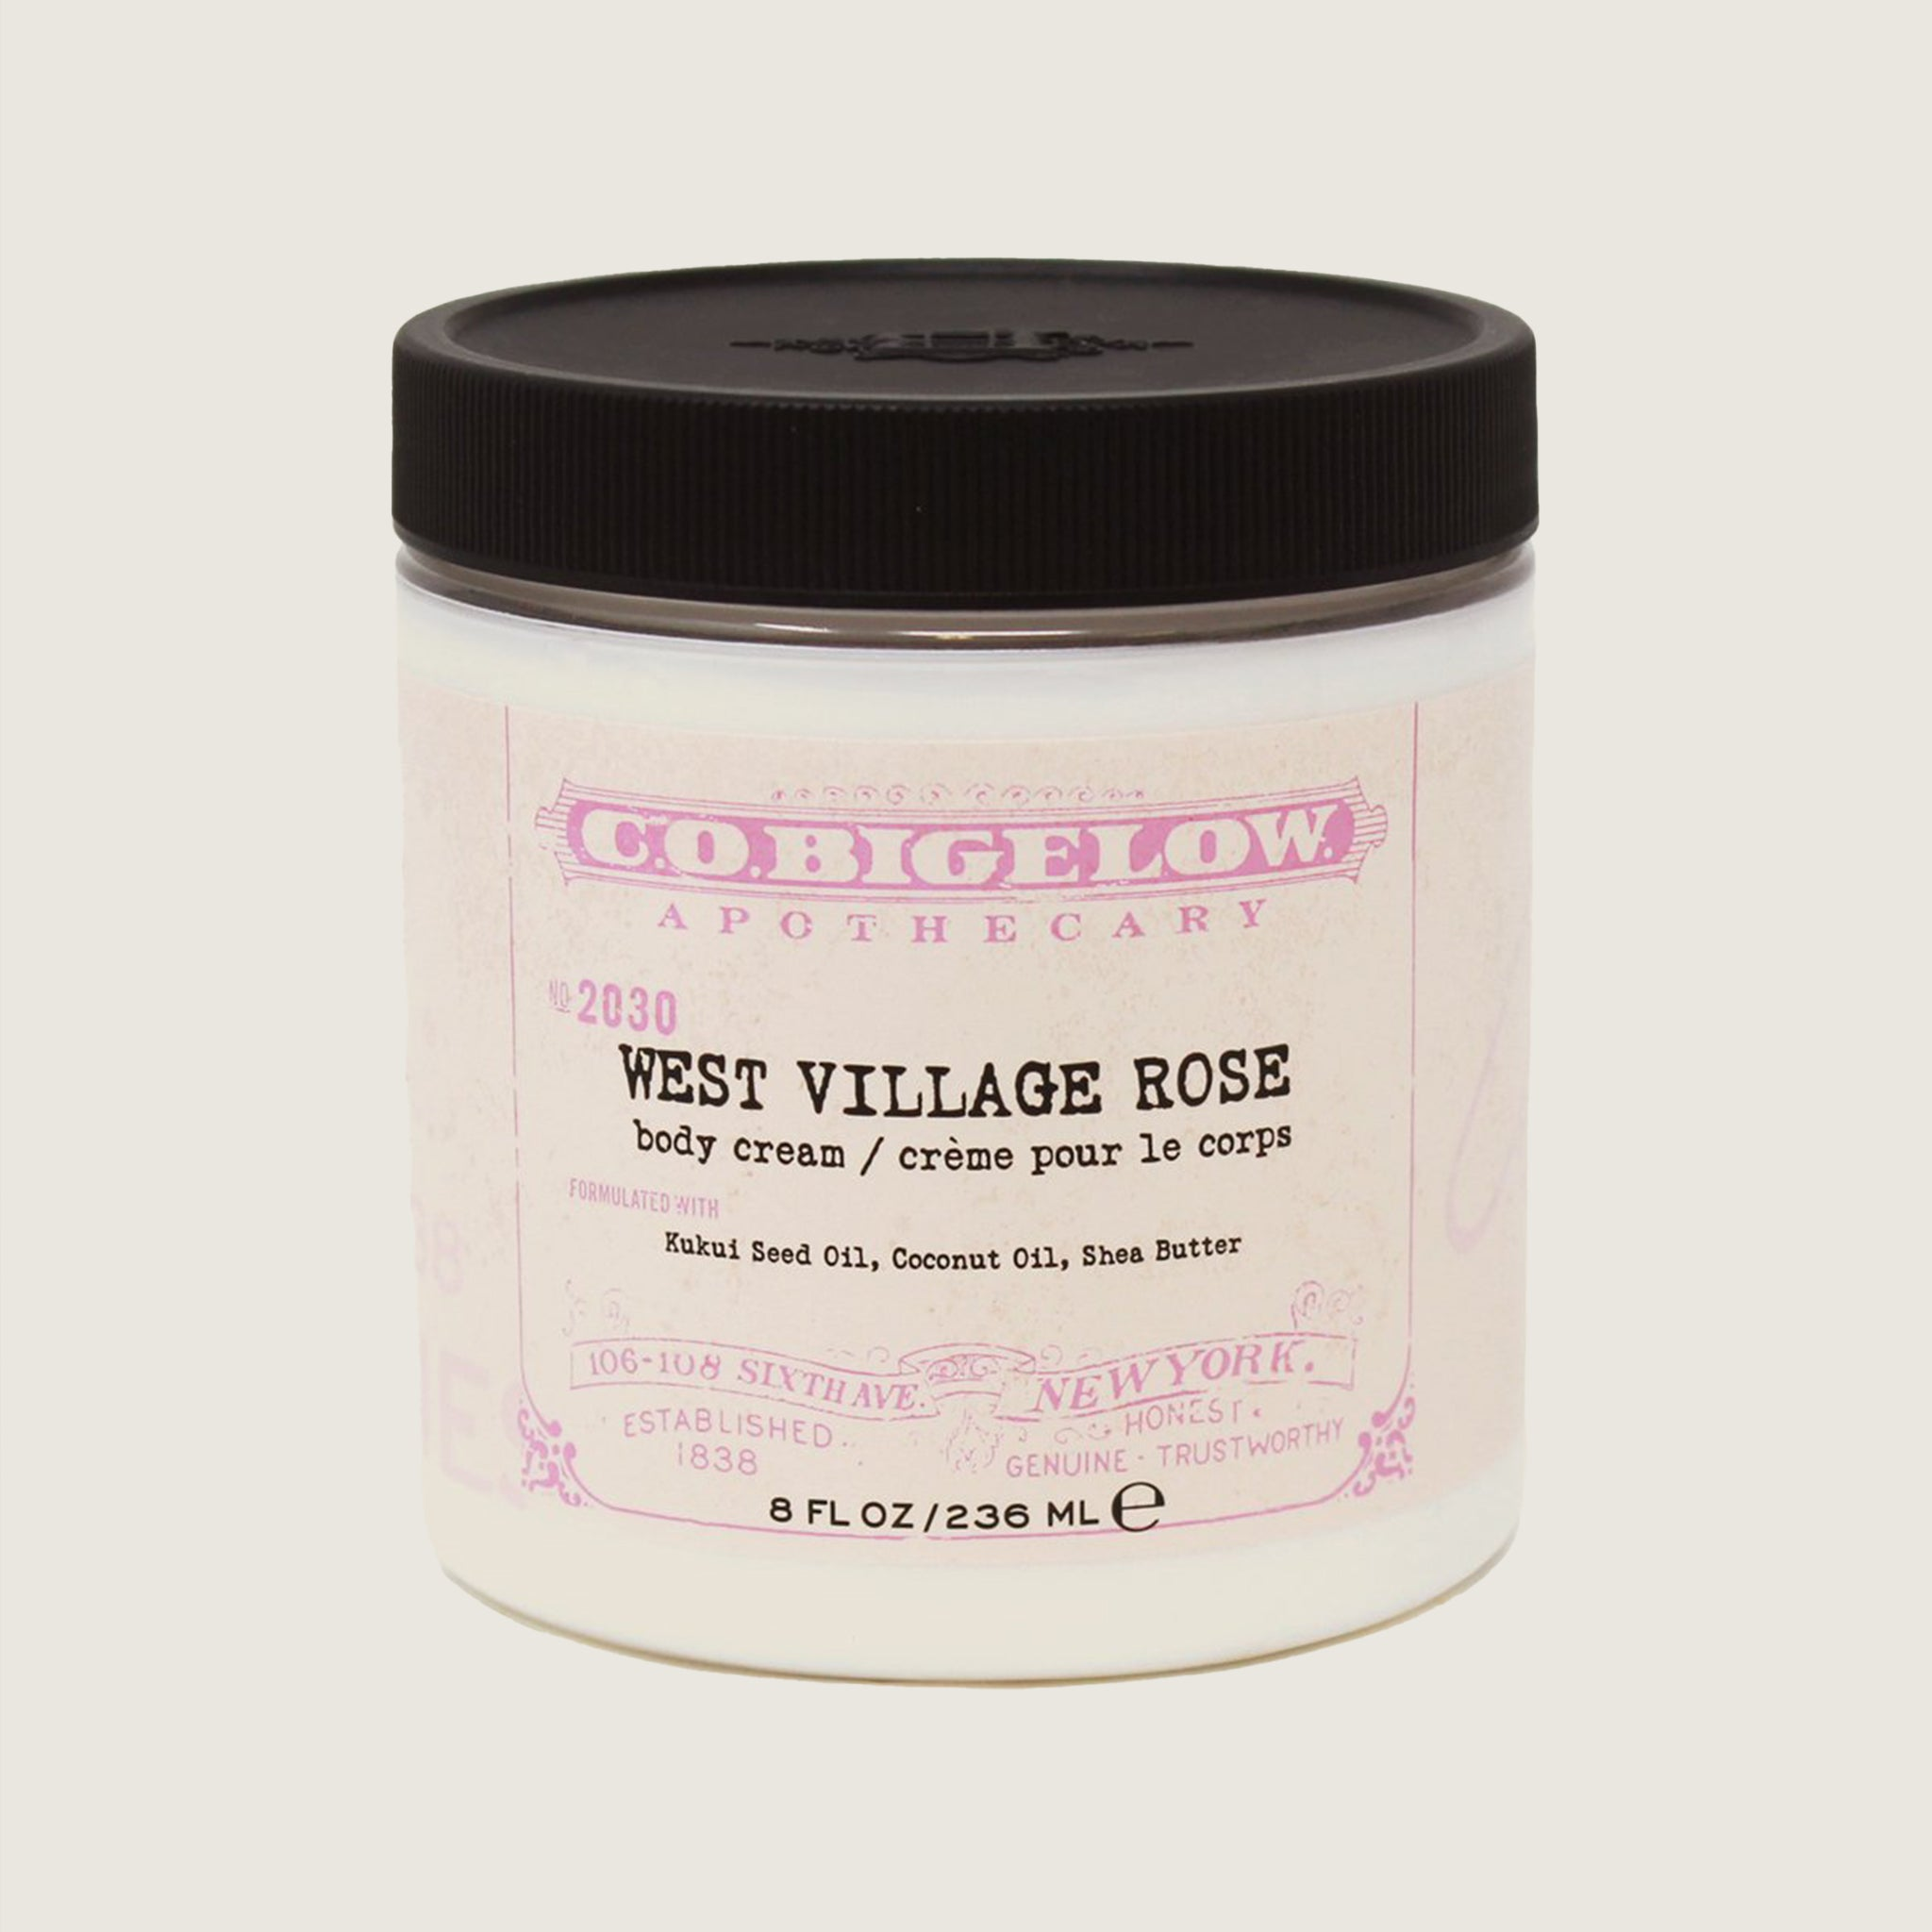 West Village Rose Body Cream - Blackbird General Store